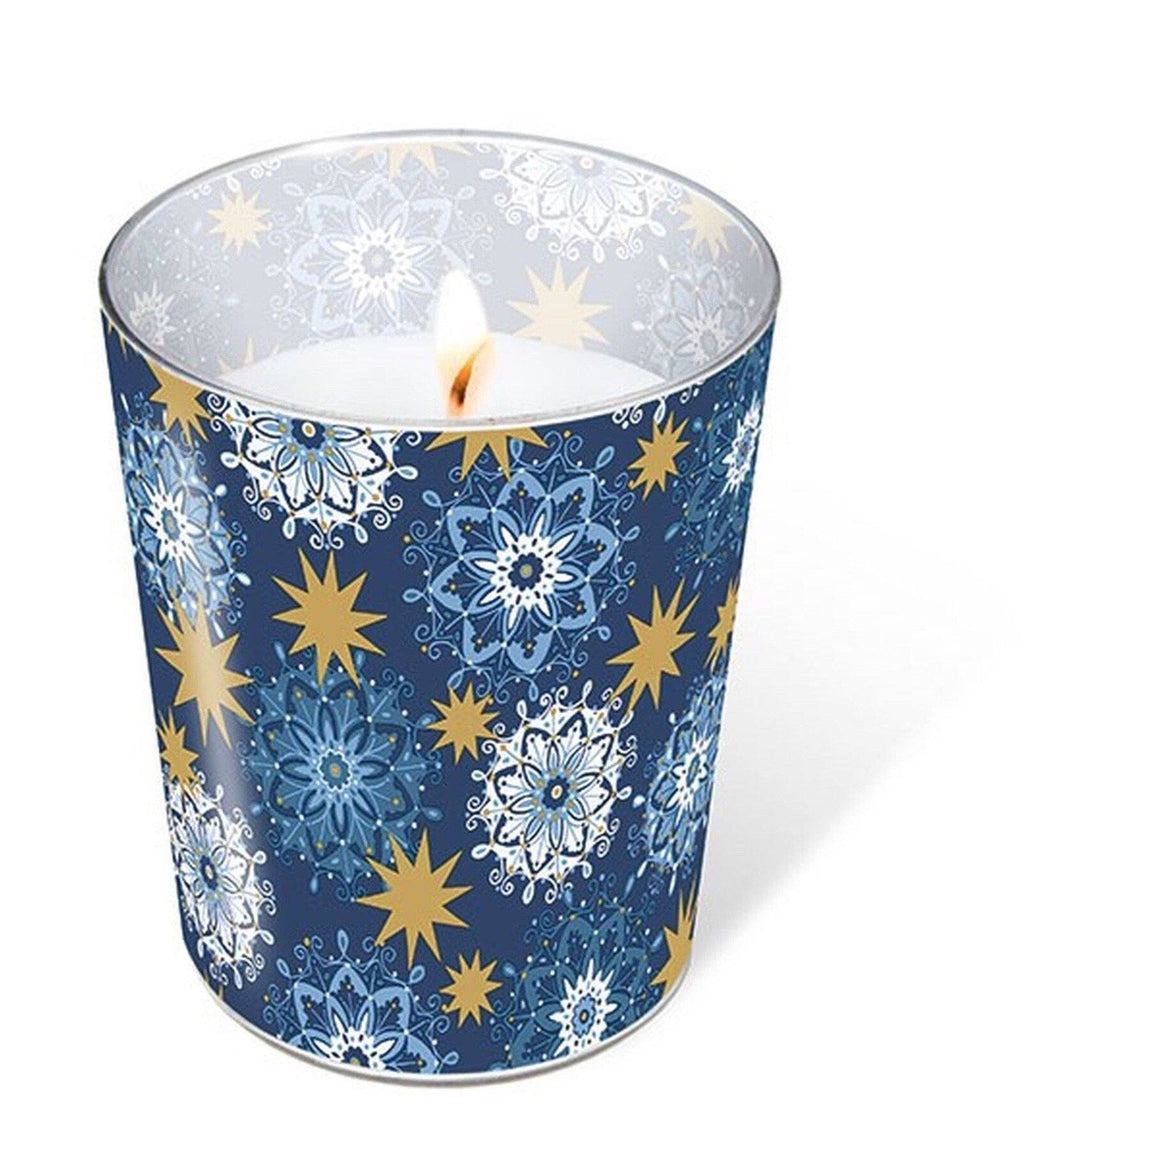 HOME - GLASS CANDLE FILIGREE STARS ** Sale **